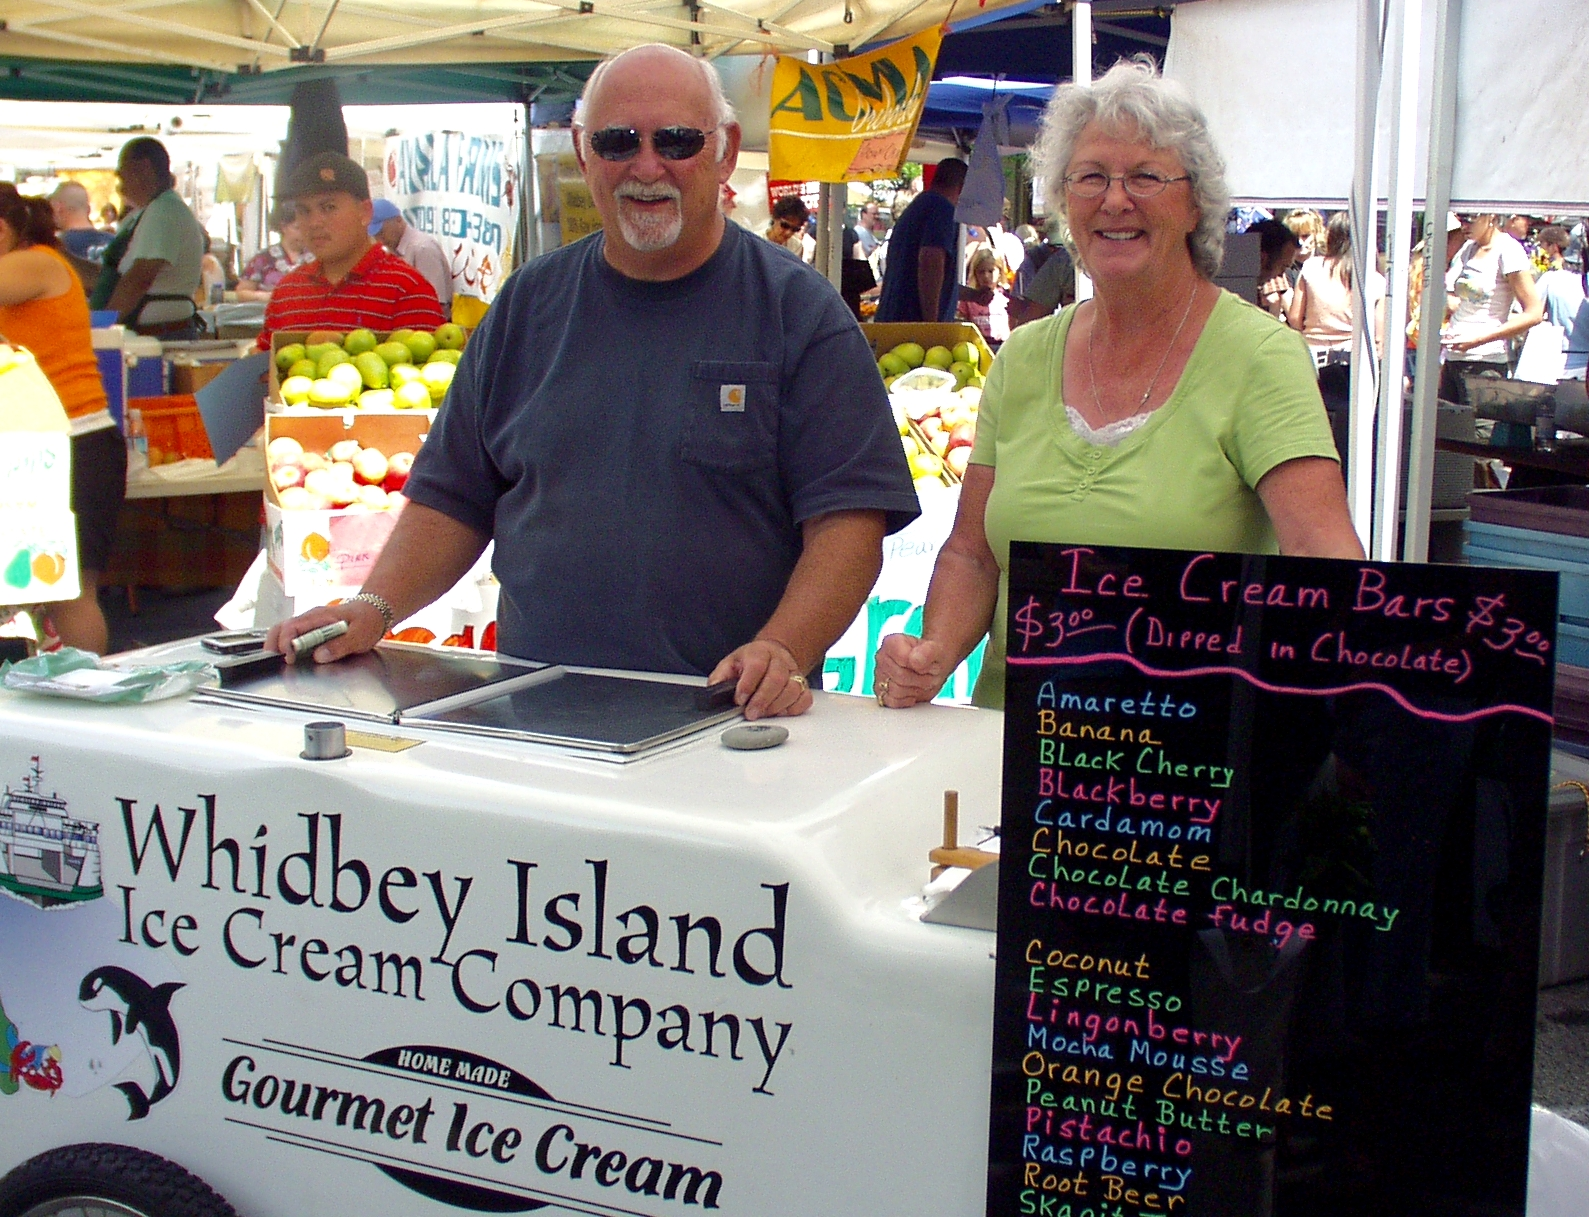 Ron & Florence from Whidbey Island Ice Cream Company. Photo copyright 2009 by Zachary D. Lyons.